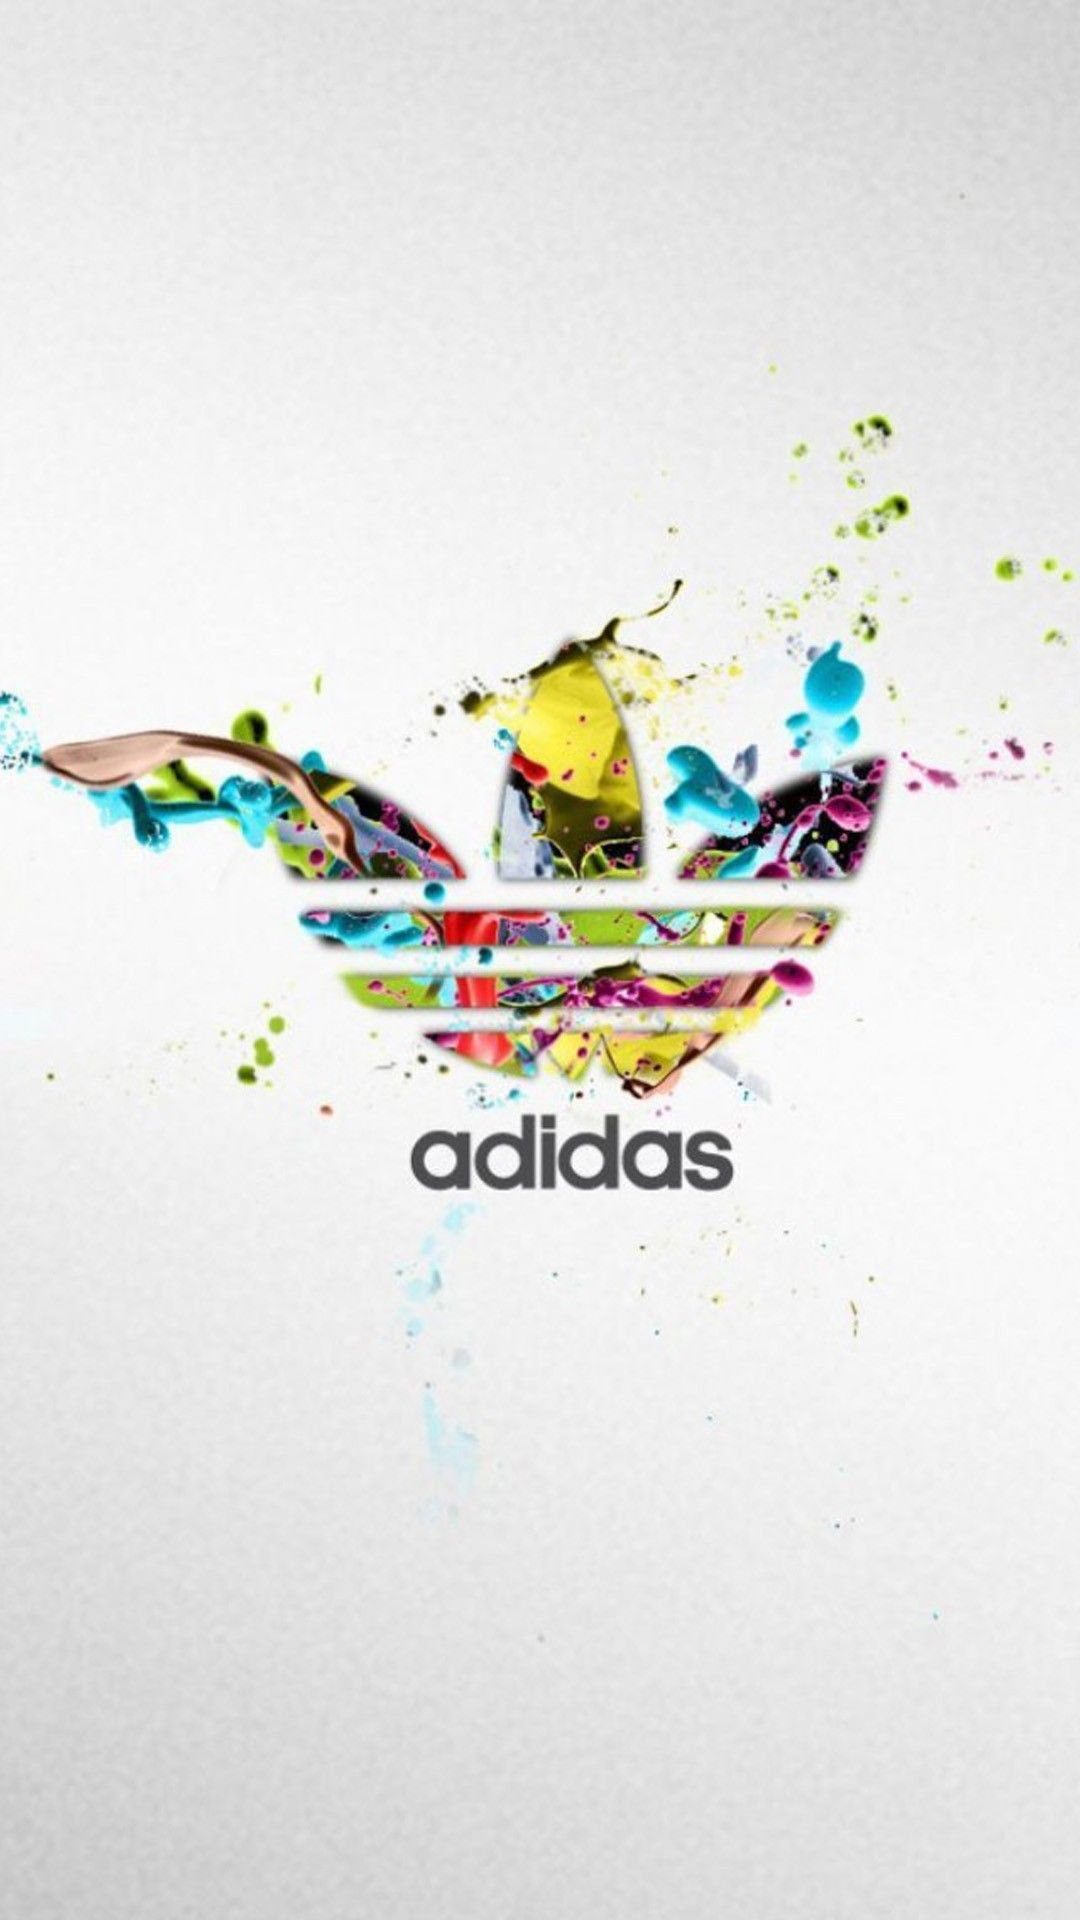 Sports iPhone 6 Plus Wallpapers Adidas Colorful Logo